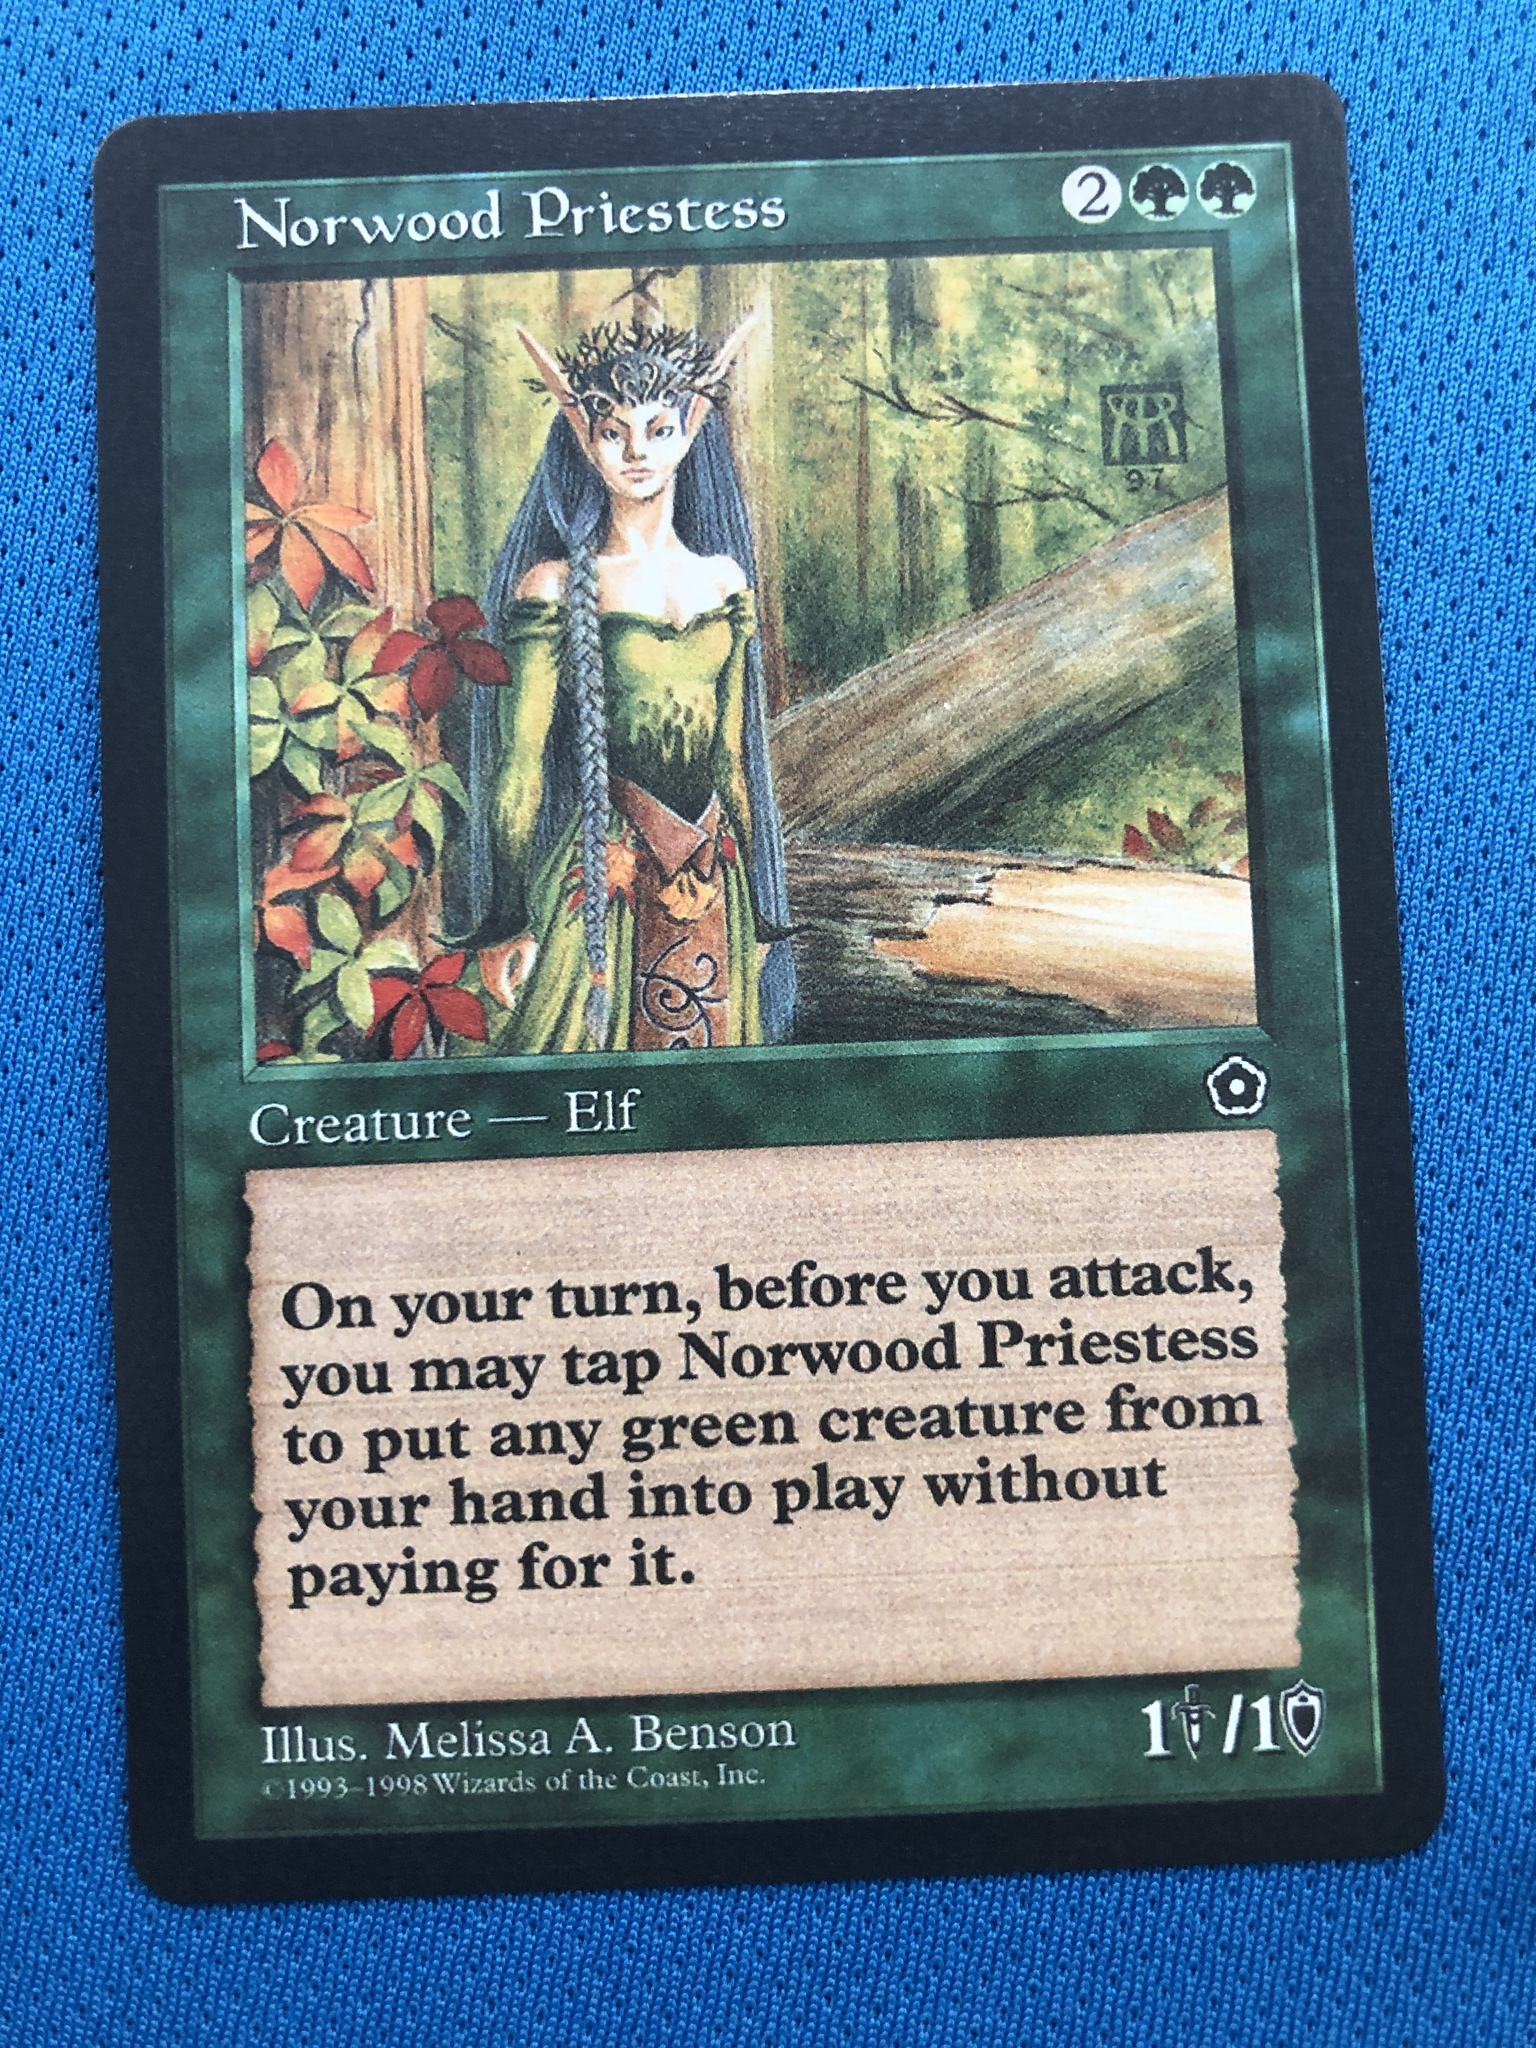 Norwood Priestess 	Portal Second Age Magician ProxyKing 8.0 VIP The Proxy Cards To Gathering Every Single Mg Card.